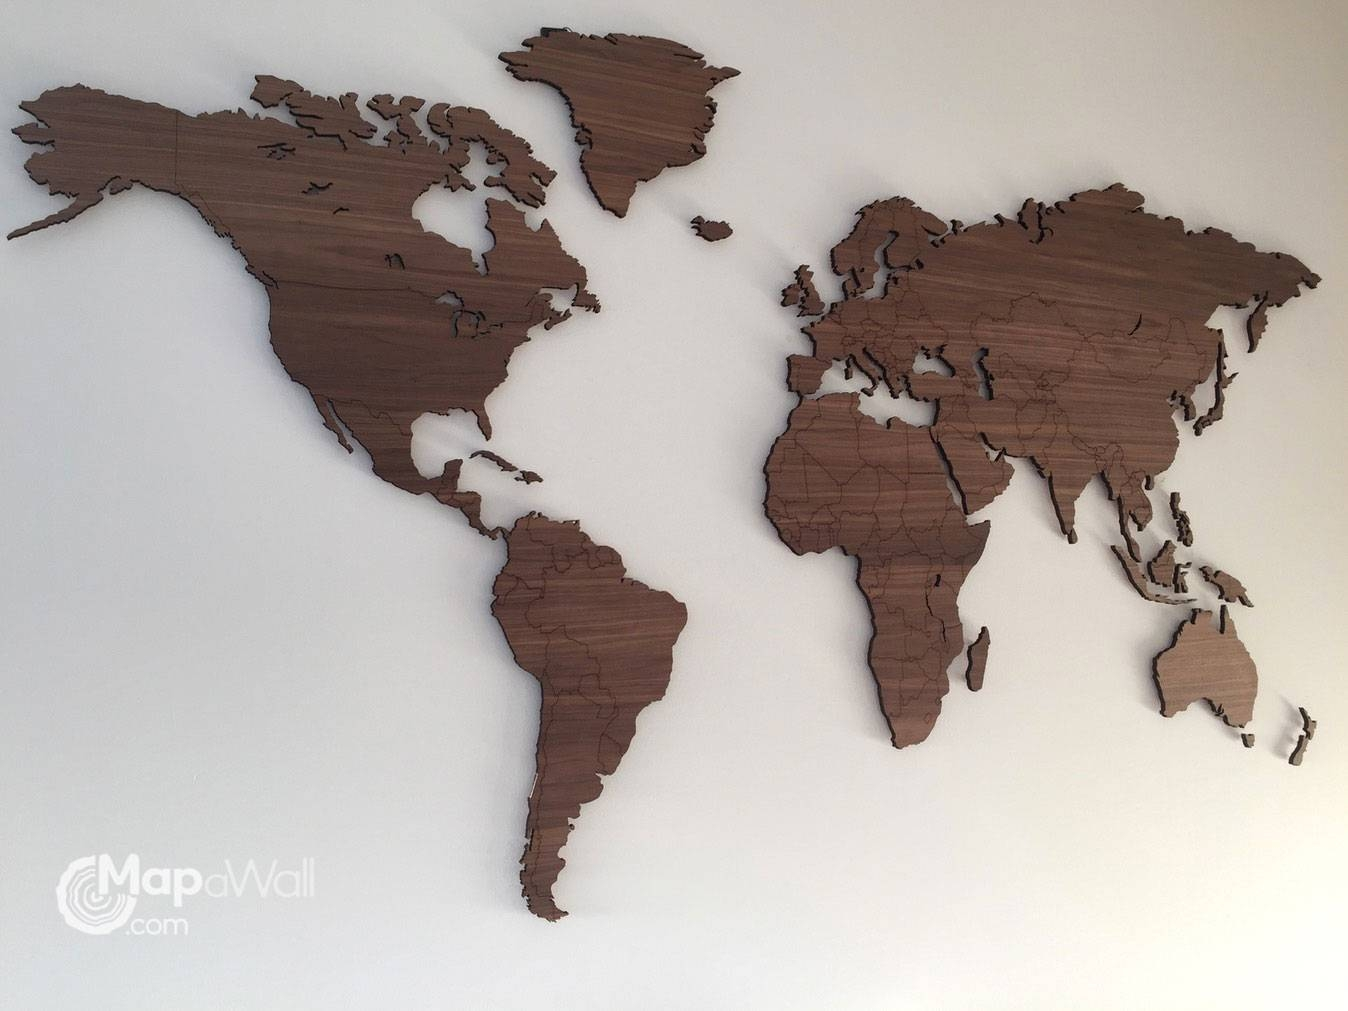 Gallery of world map wood wall art view 17 of 20 photos 50 wooden world map wall art top 10 wonderful diy wood art and throughout current world gumiabroncs